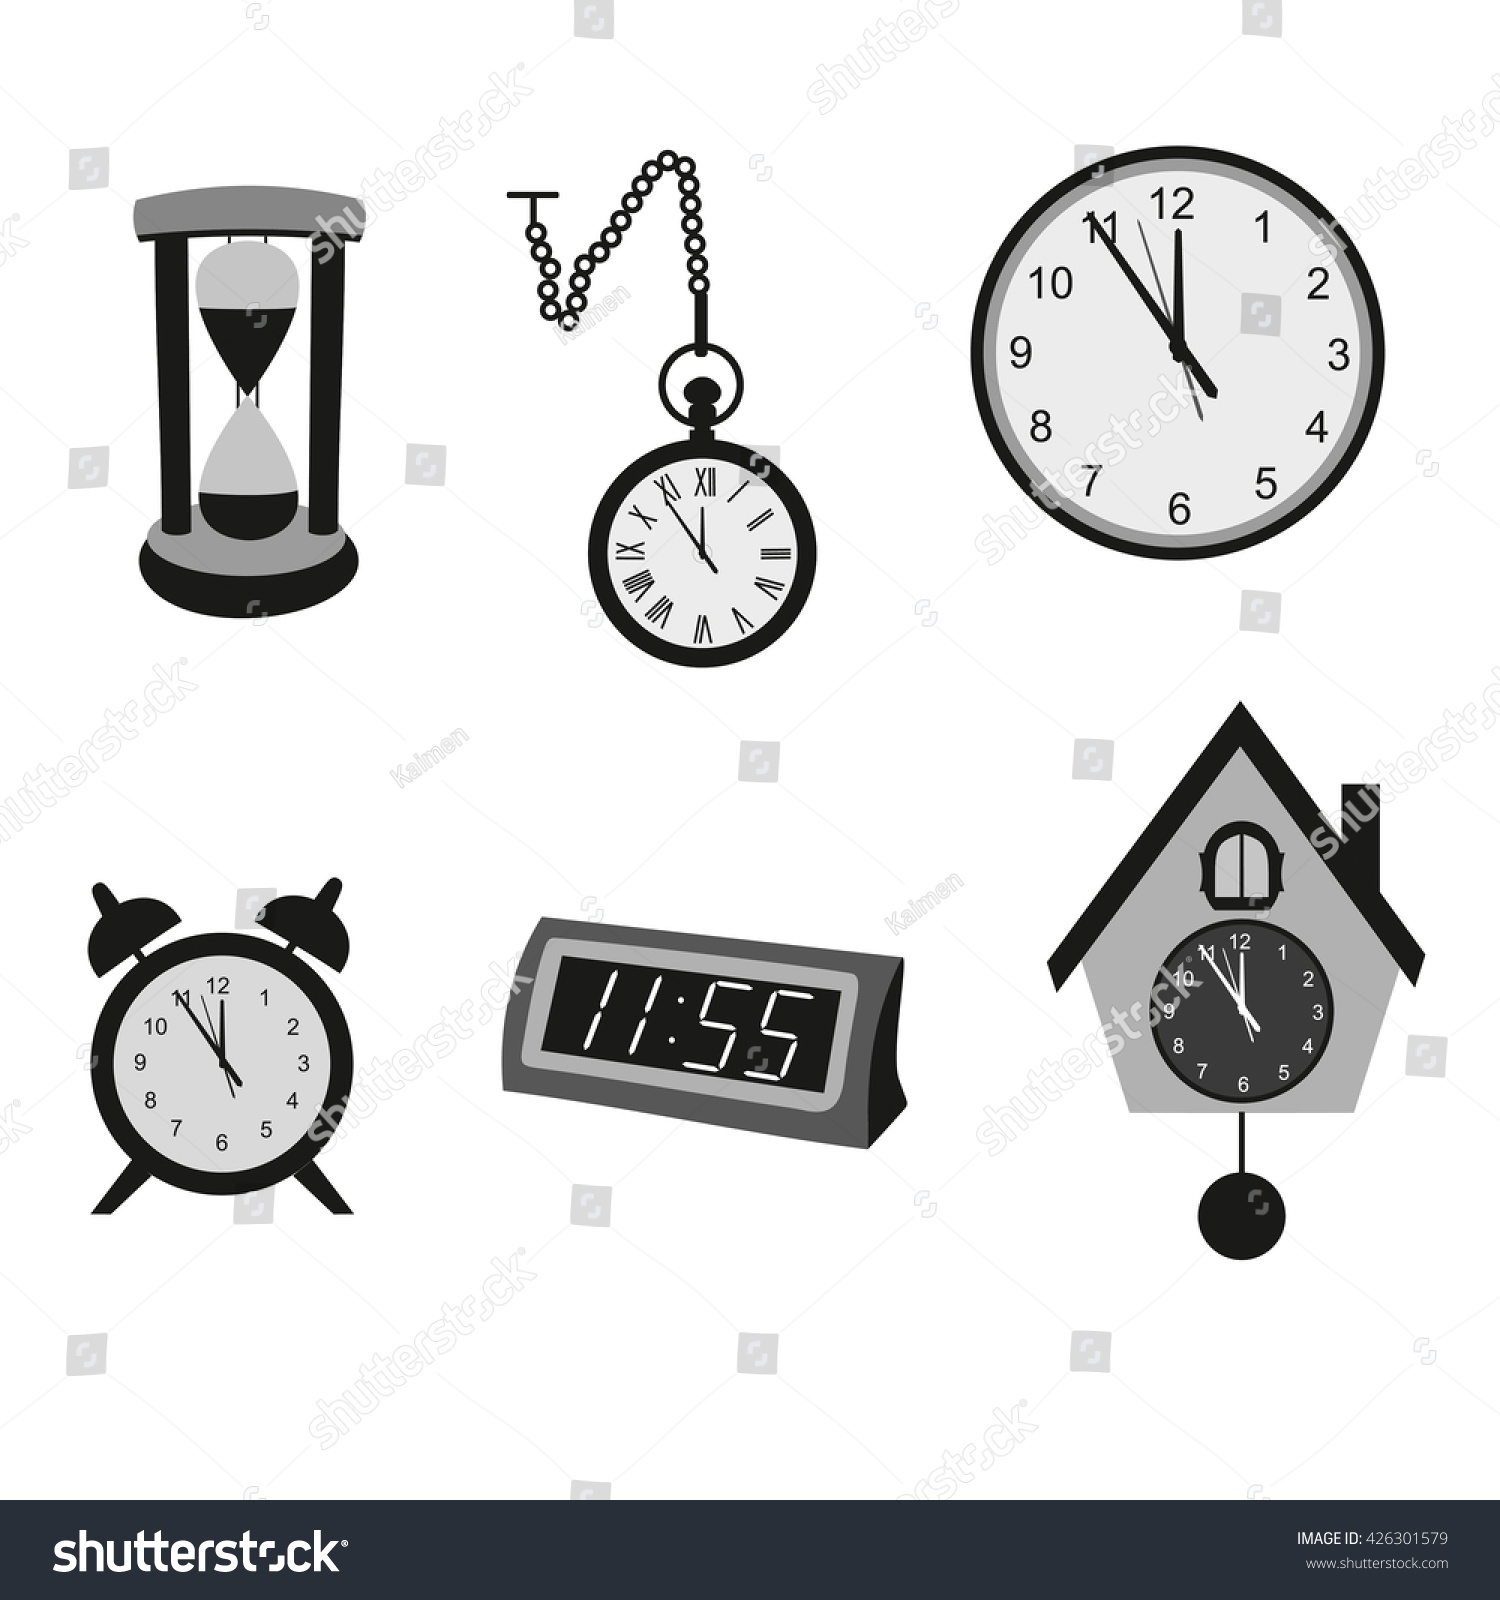 Different kinds clocks black clocks watches stock vector 426301579 different kinds of clocks black clocks and watches icons different types of clocks amipublicfo Choice Image